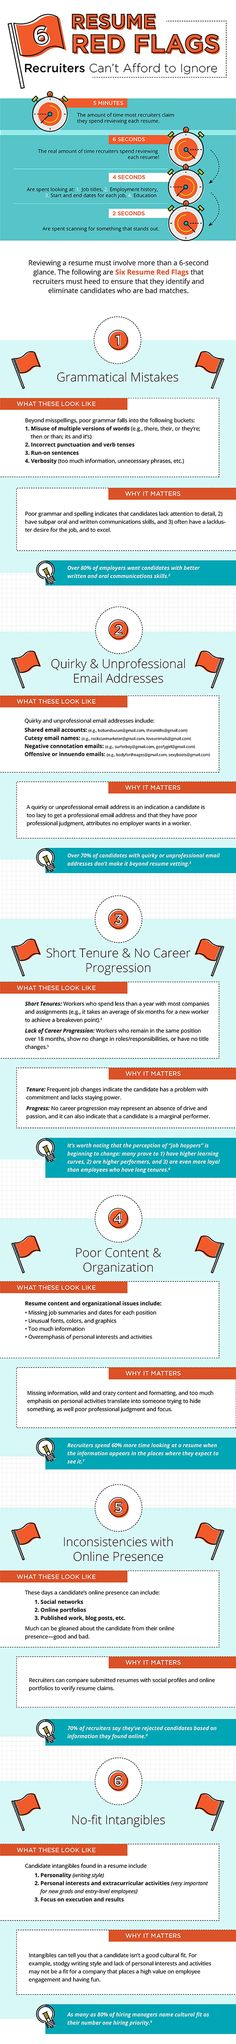 What Makes a Recruiter Stop Reading Your Resume? [Infographic]